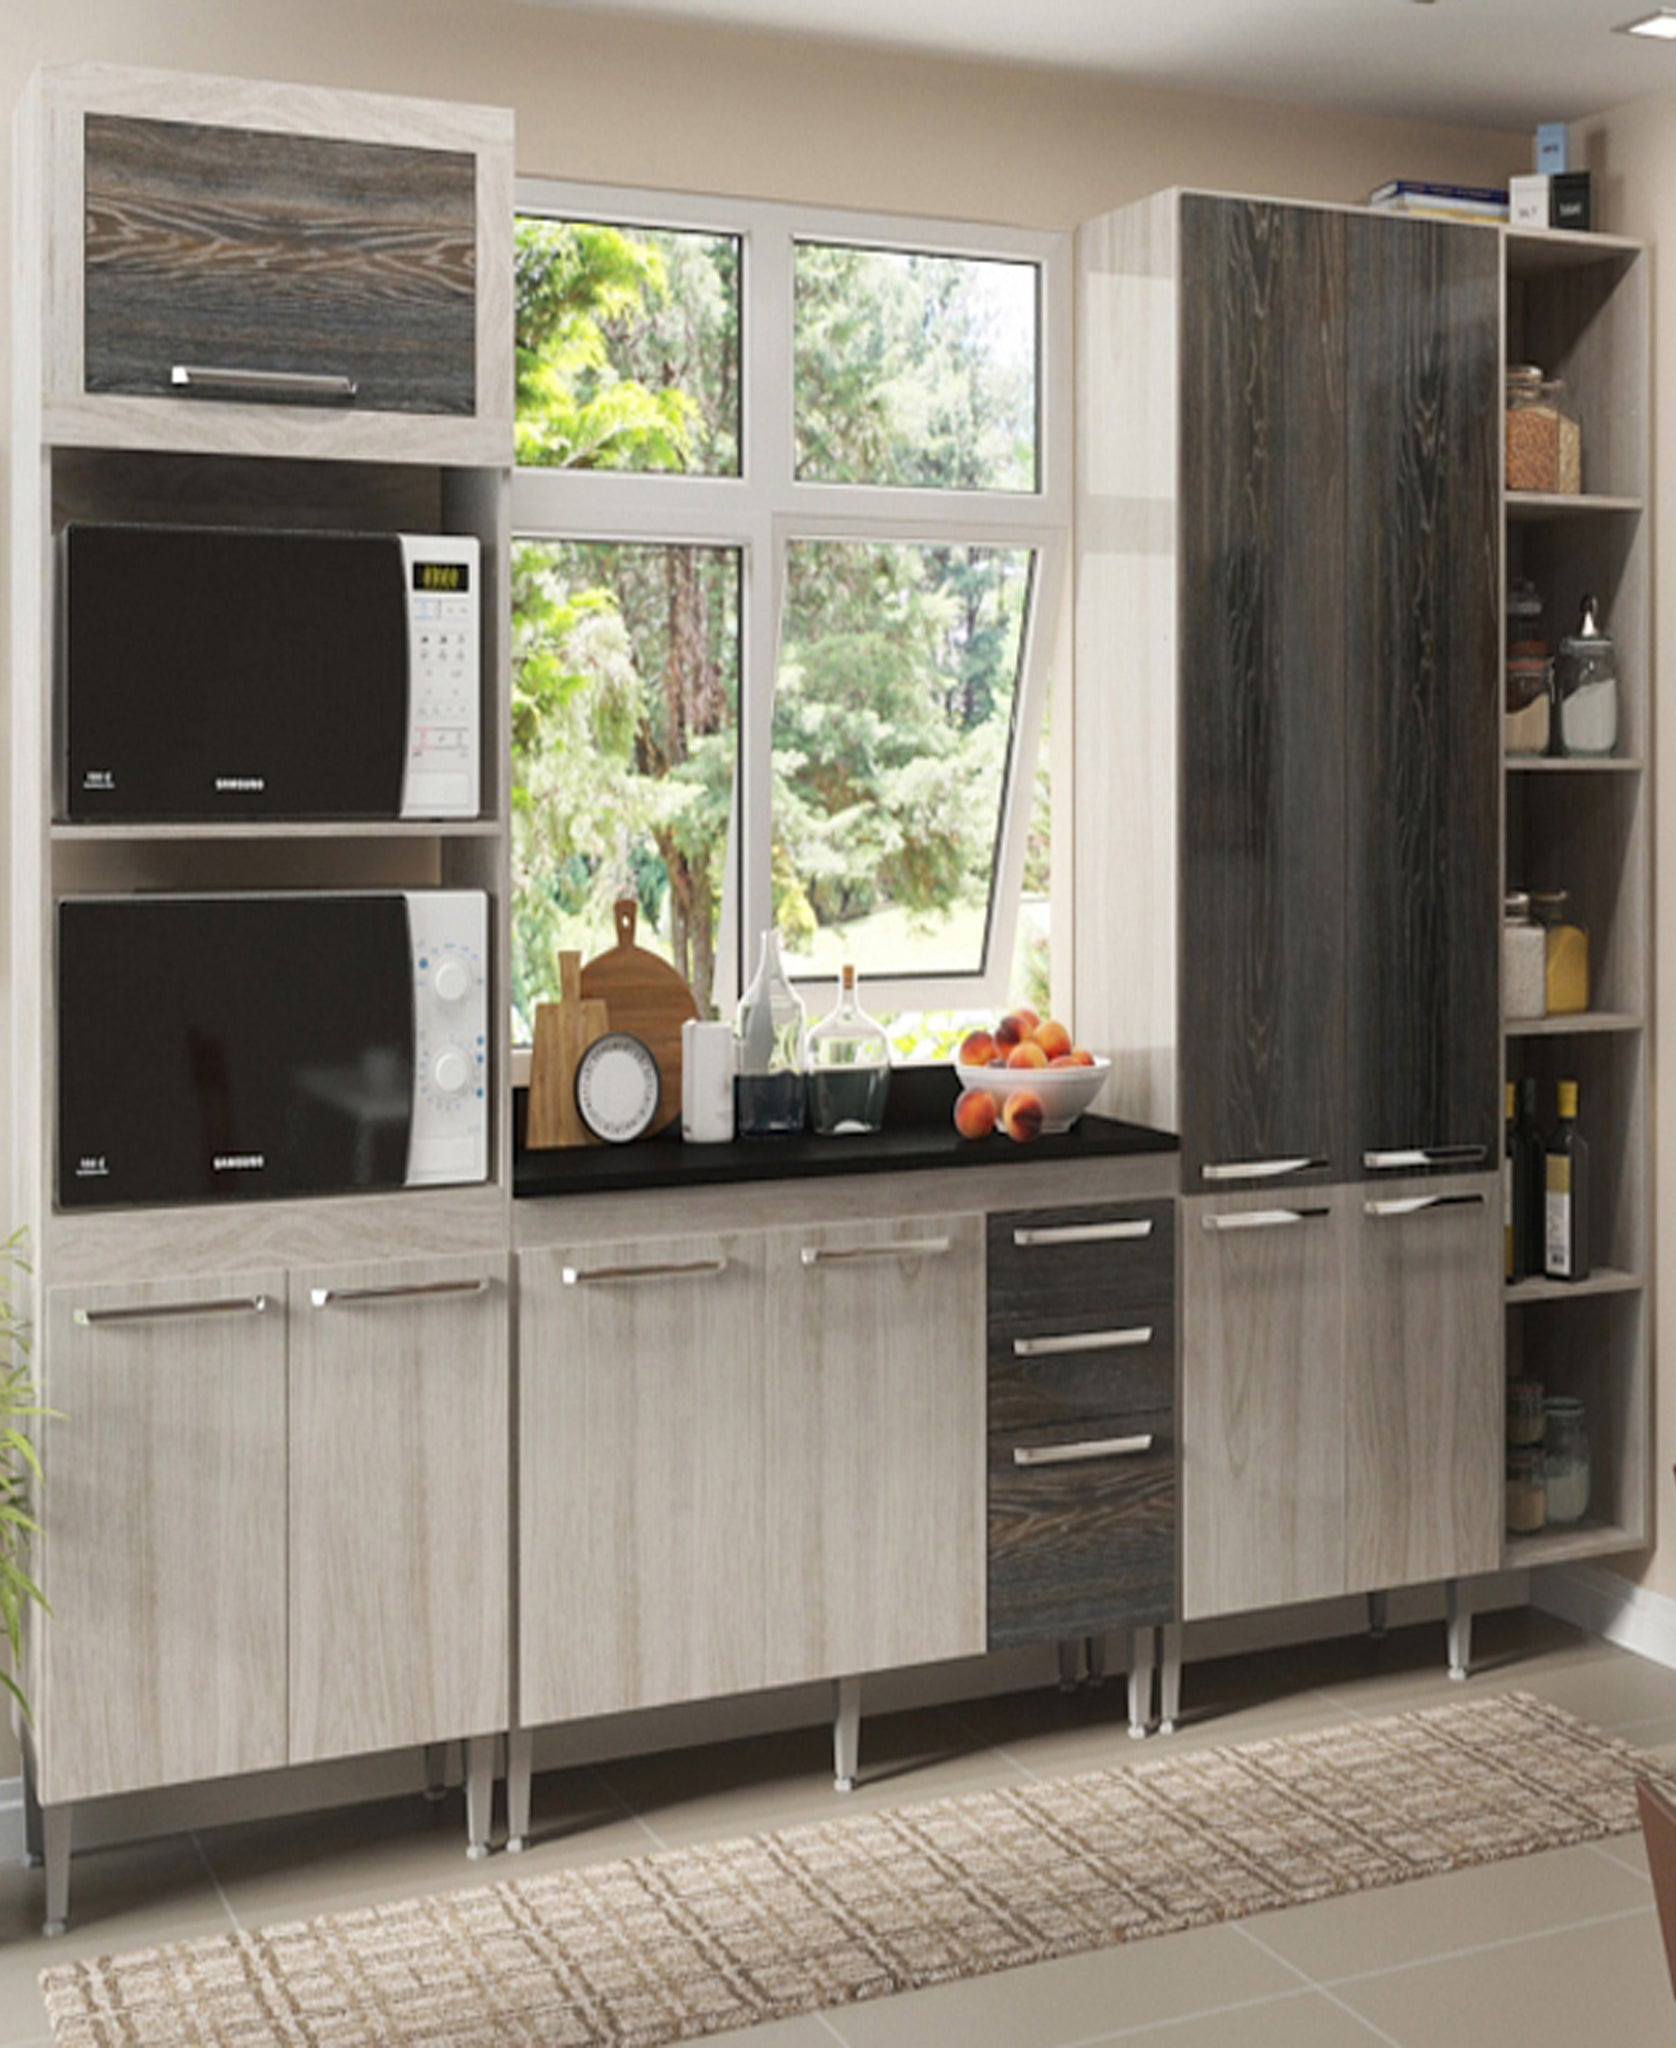 MWBR820 Kitchen Scheme